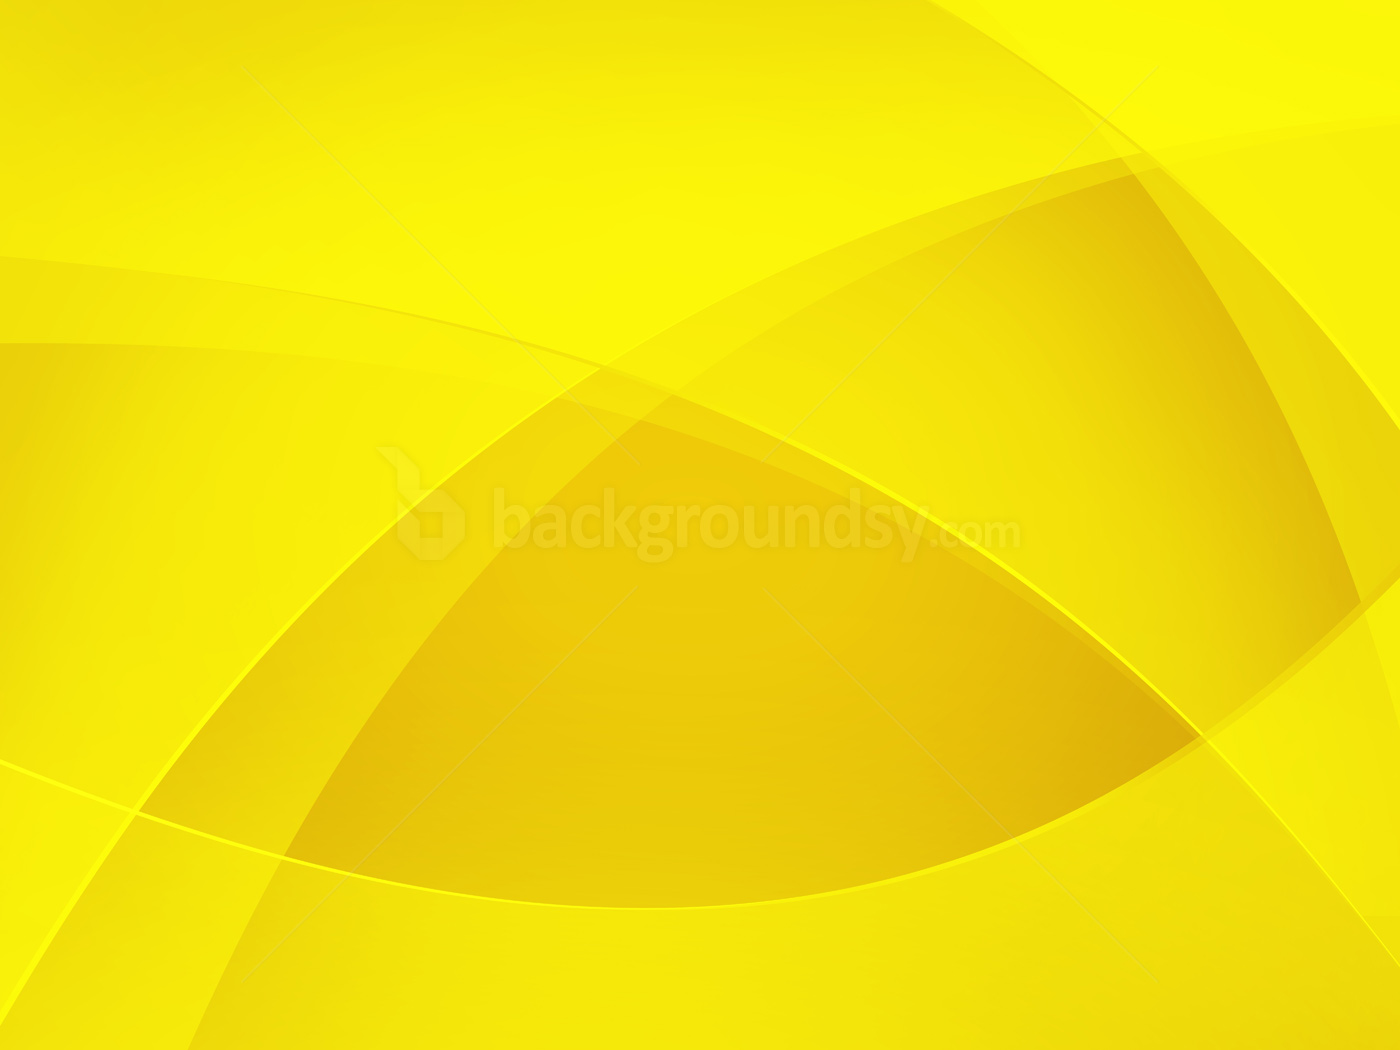 yellow background photos and - photo #43